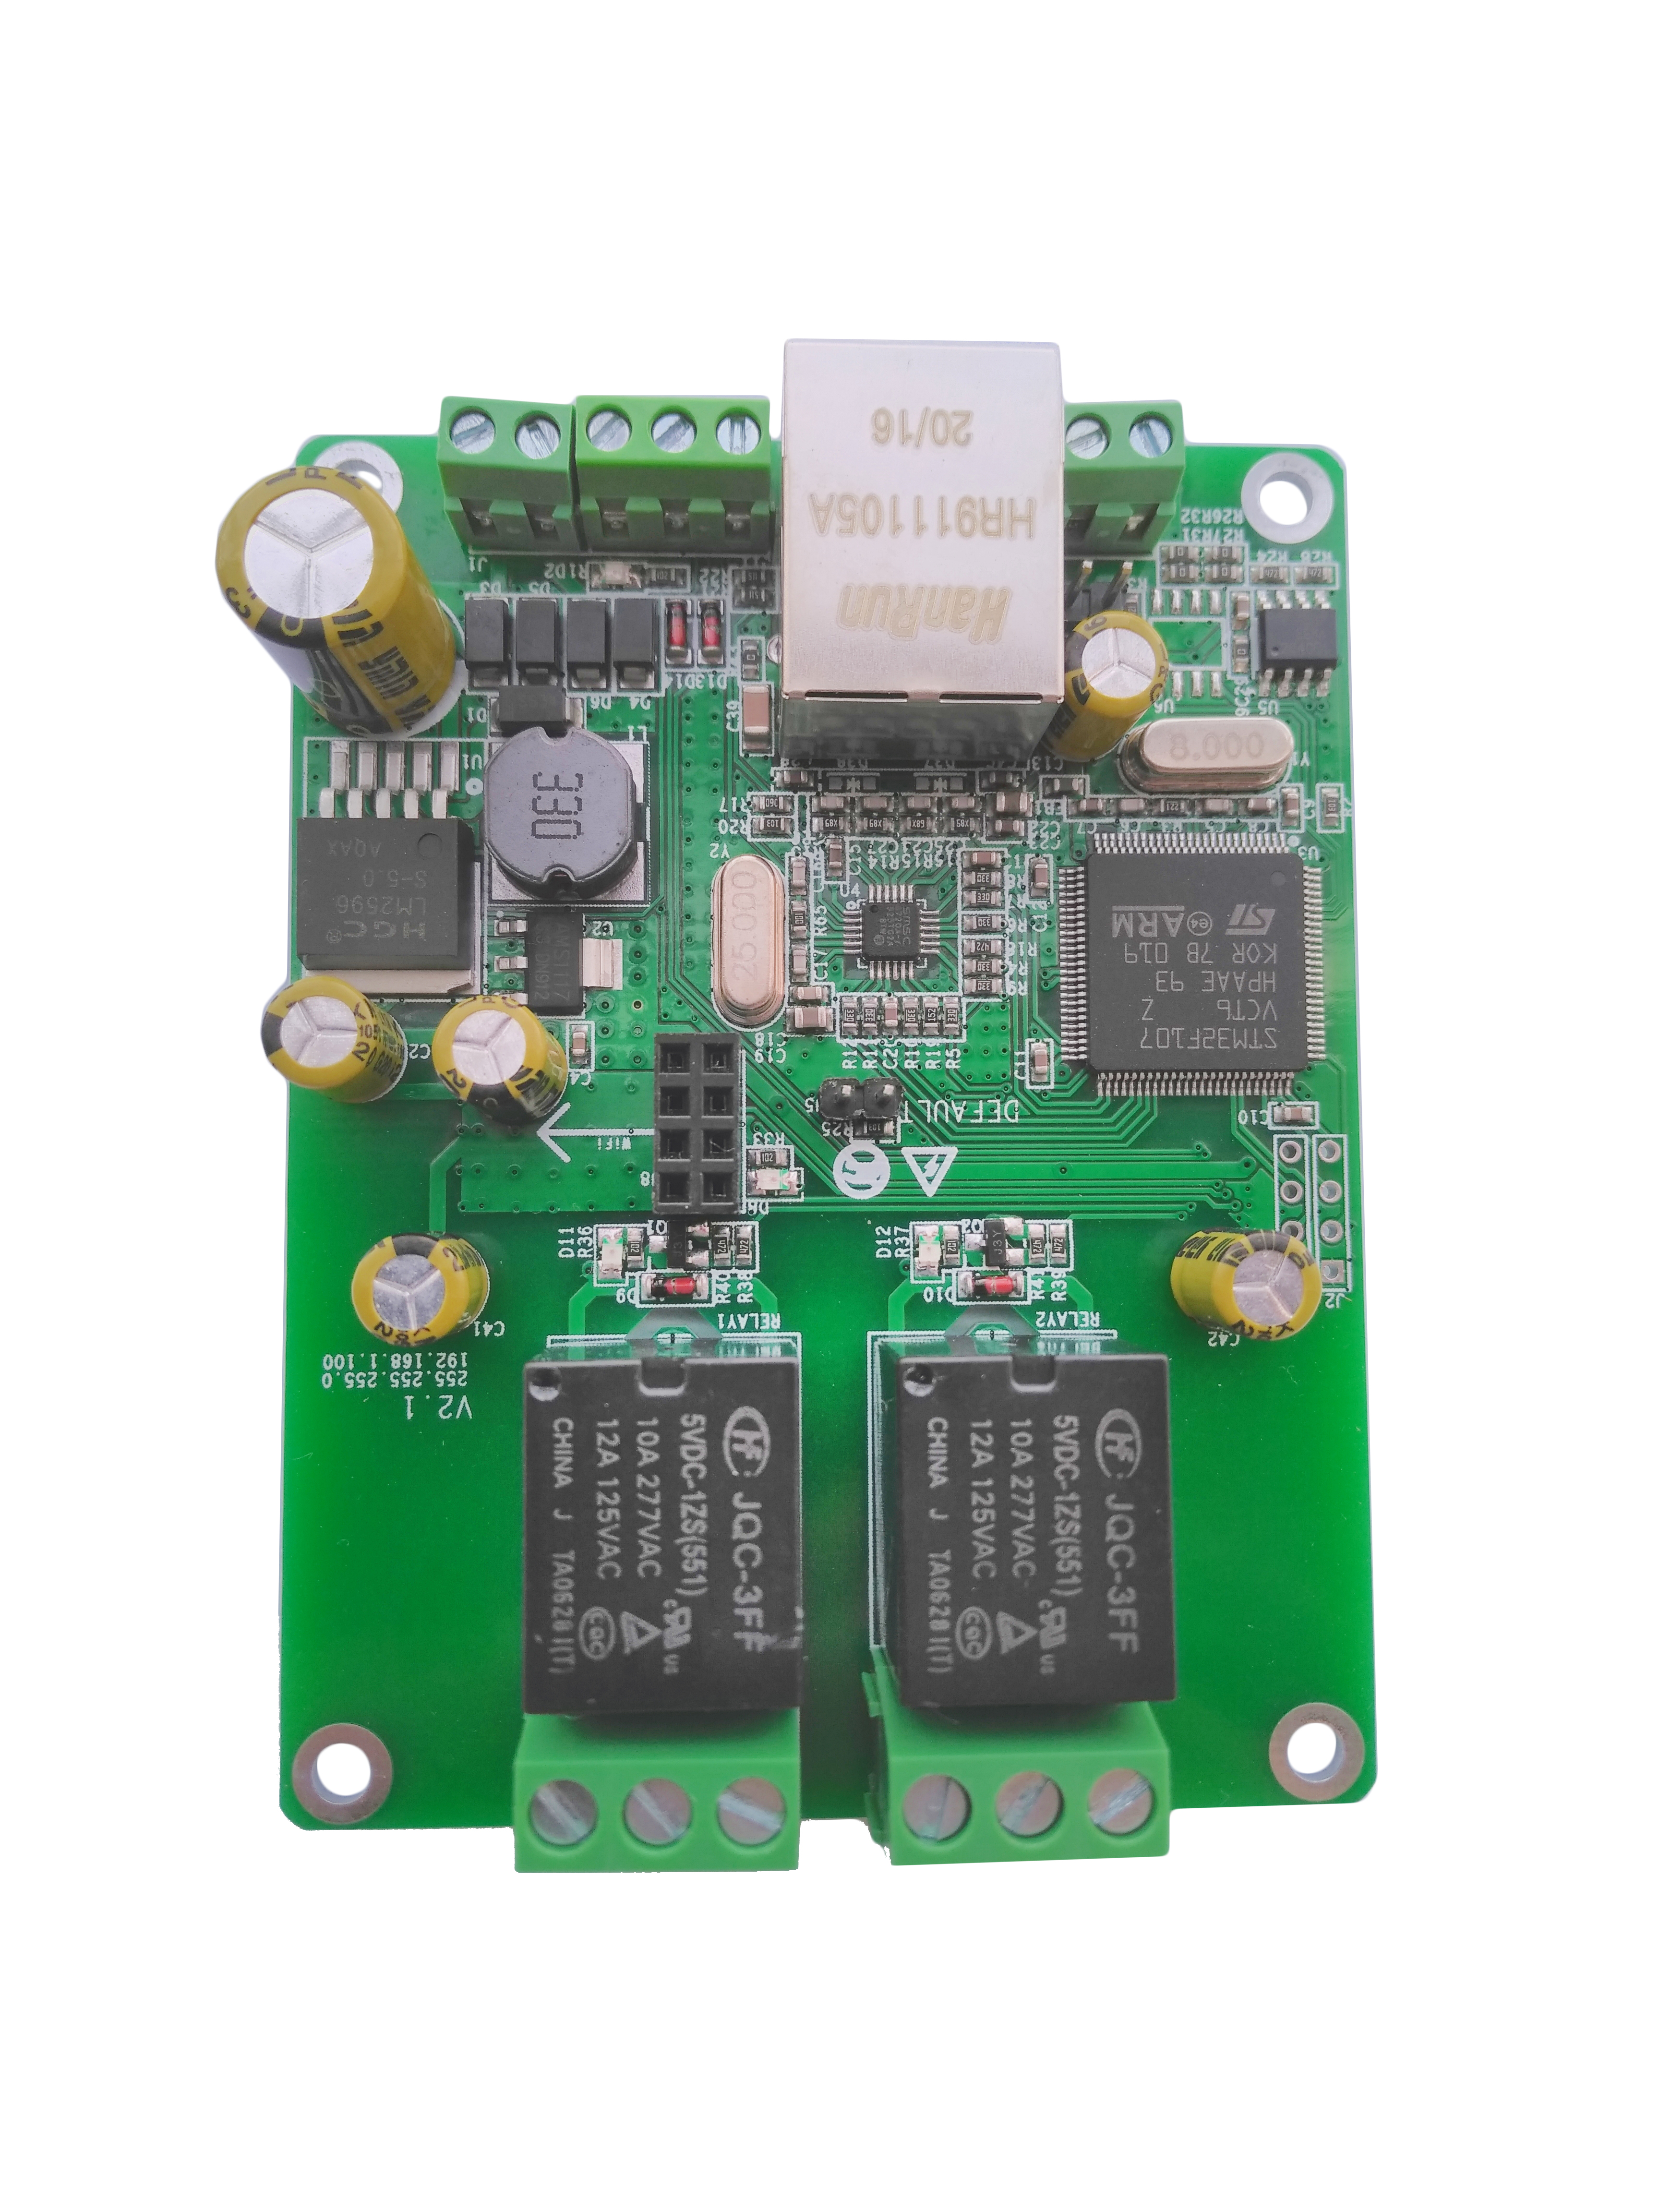 Home assistant Modbus MQTT Wifi Ethernet Relay I/O Module Web Control Http GET RS485 CAN 12v 24v Domoticz Timer